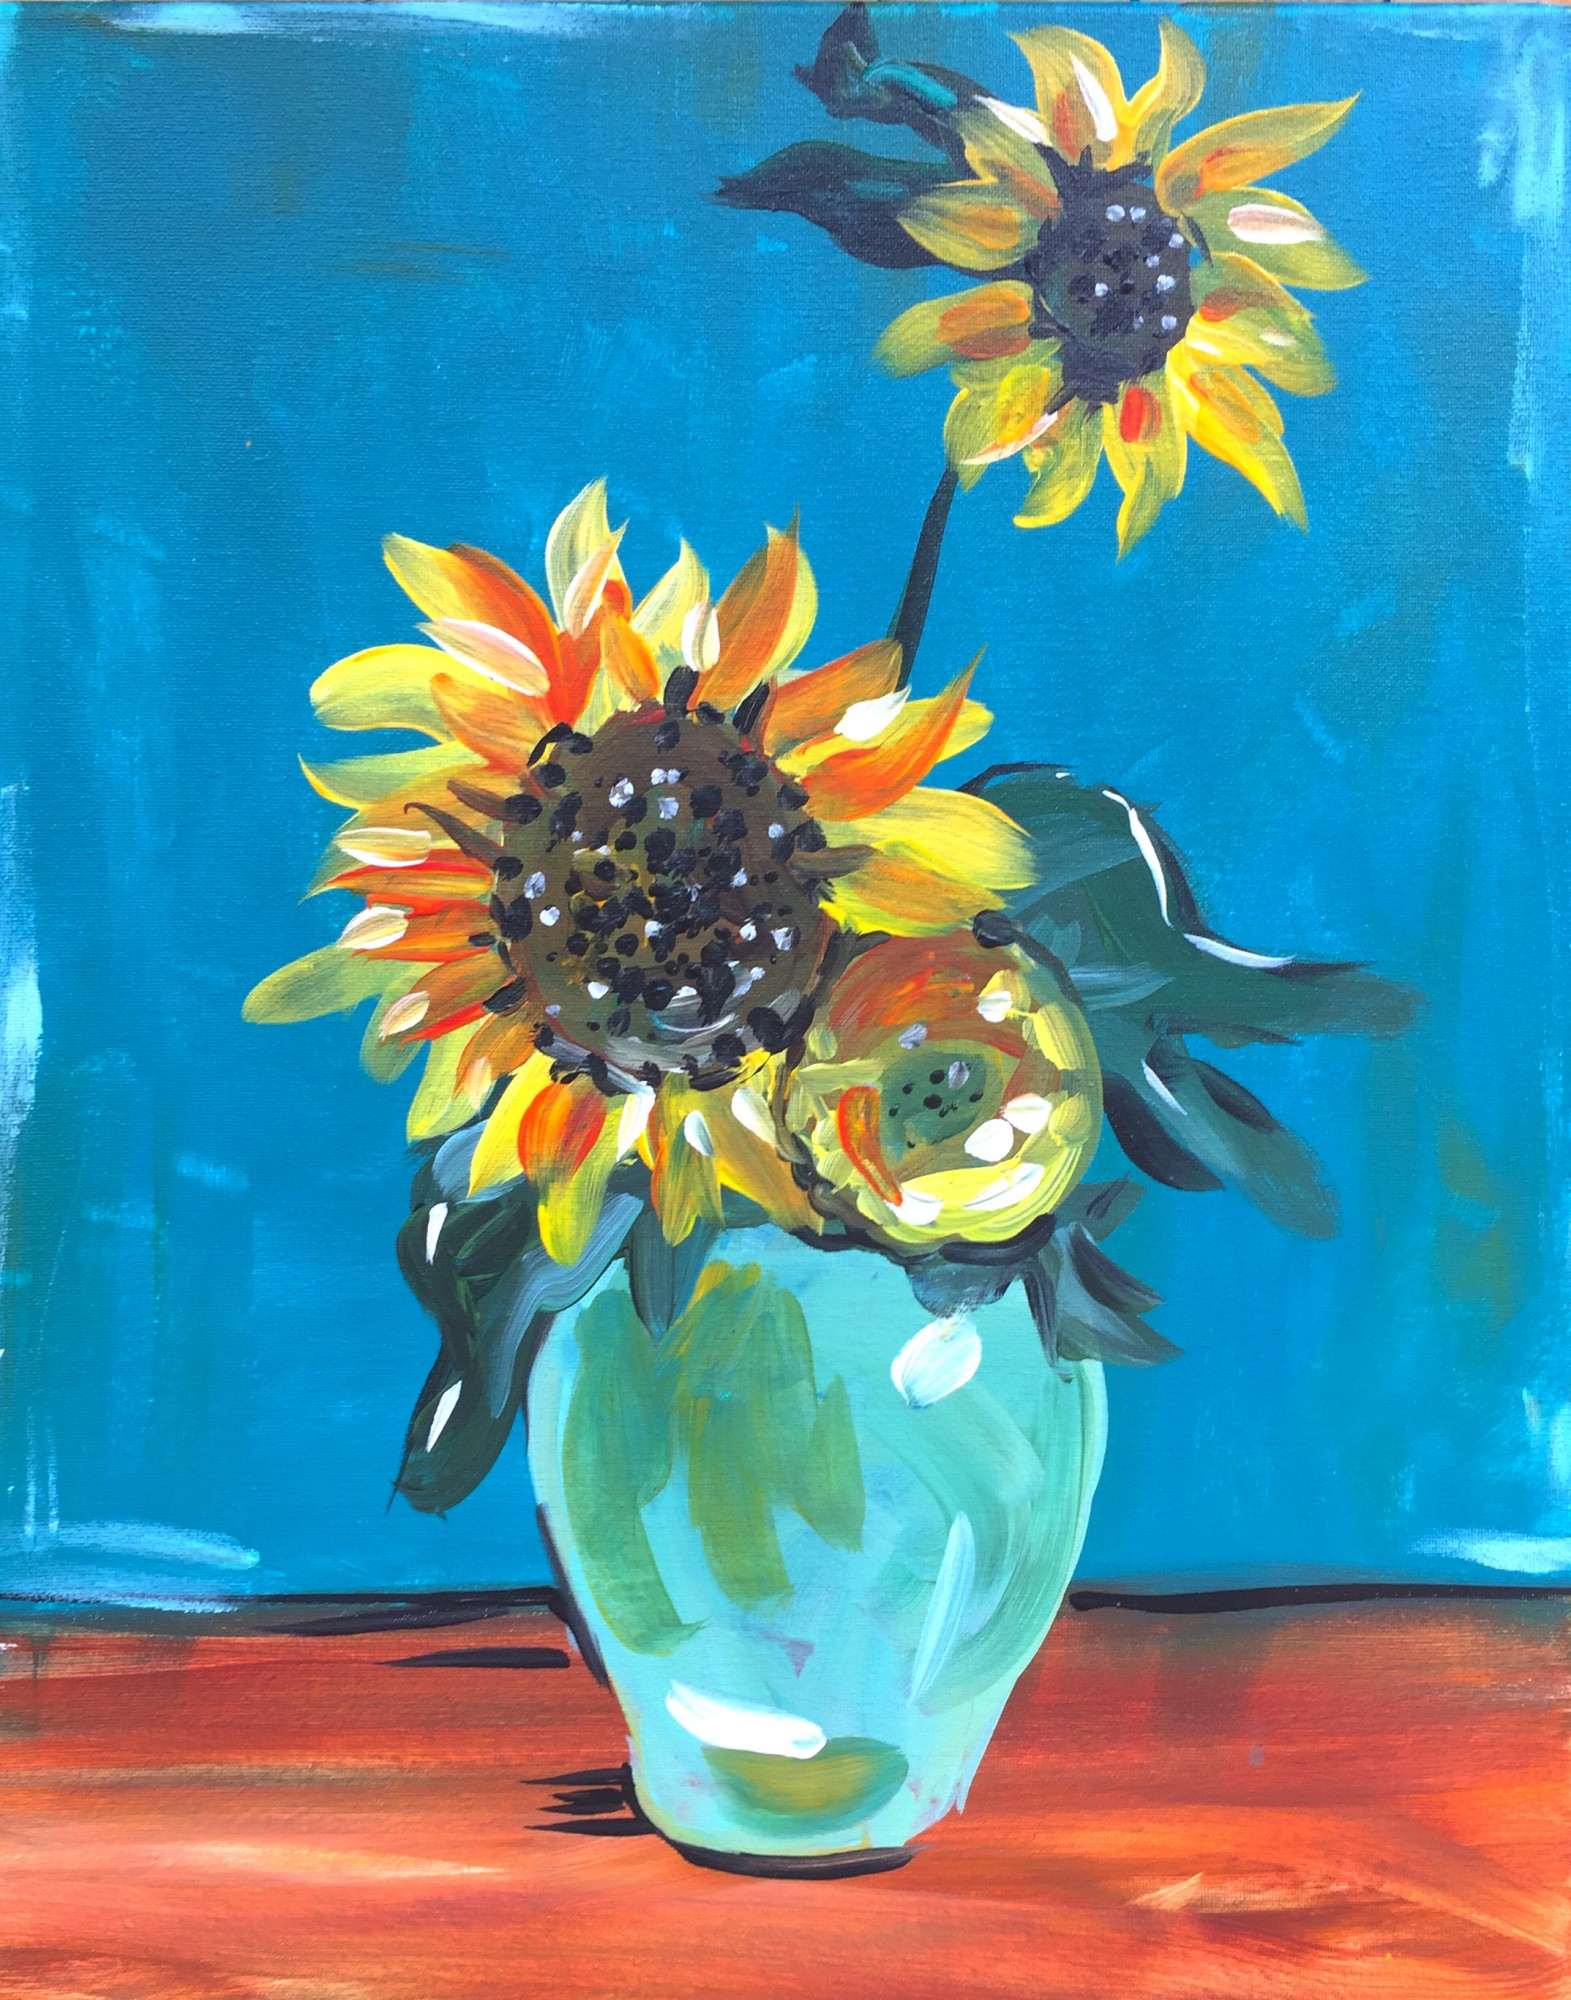 Van Gogh Sunflowers - Downtown GR